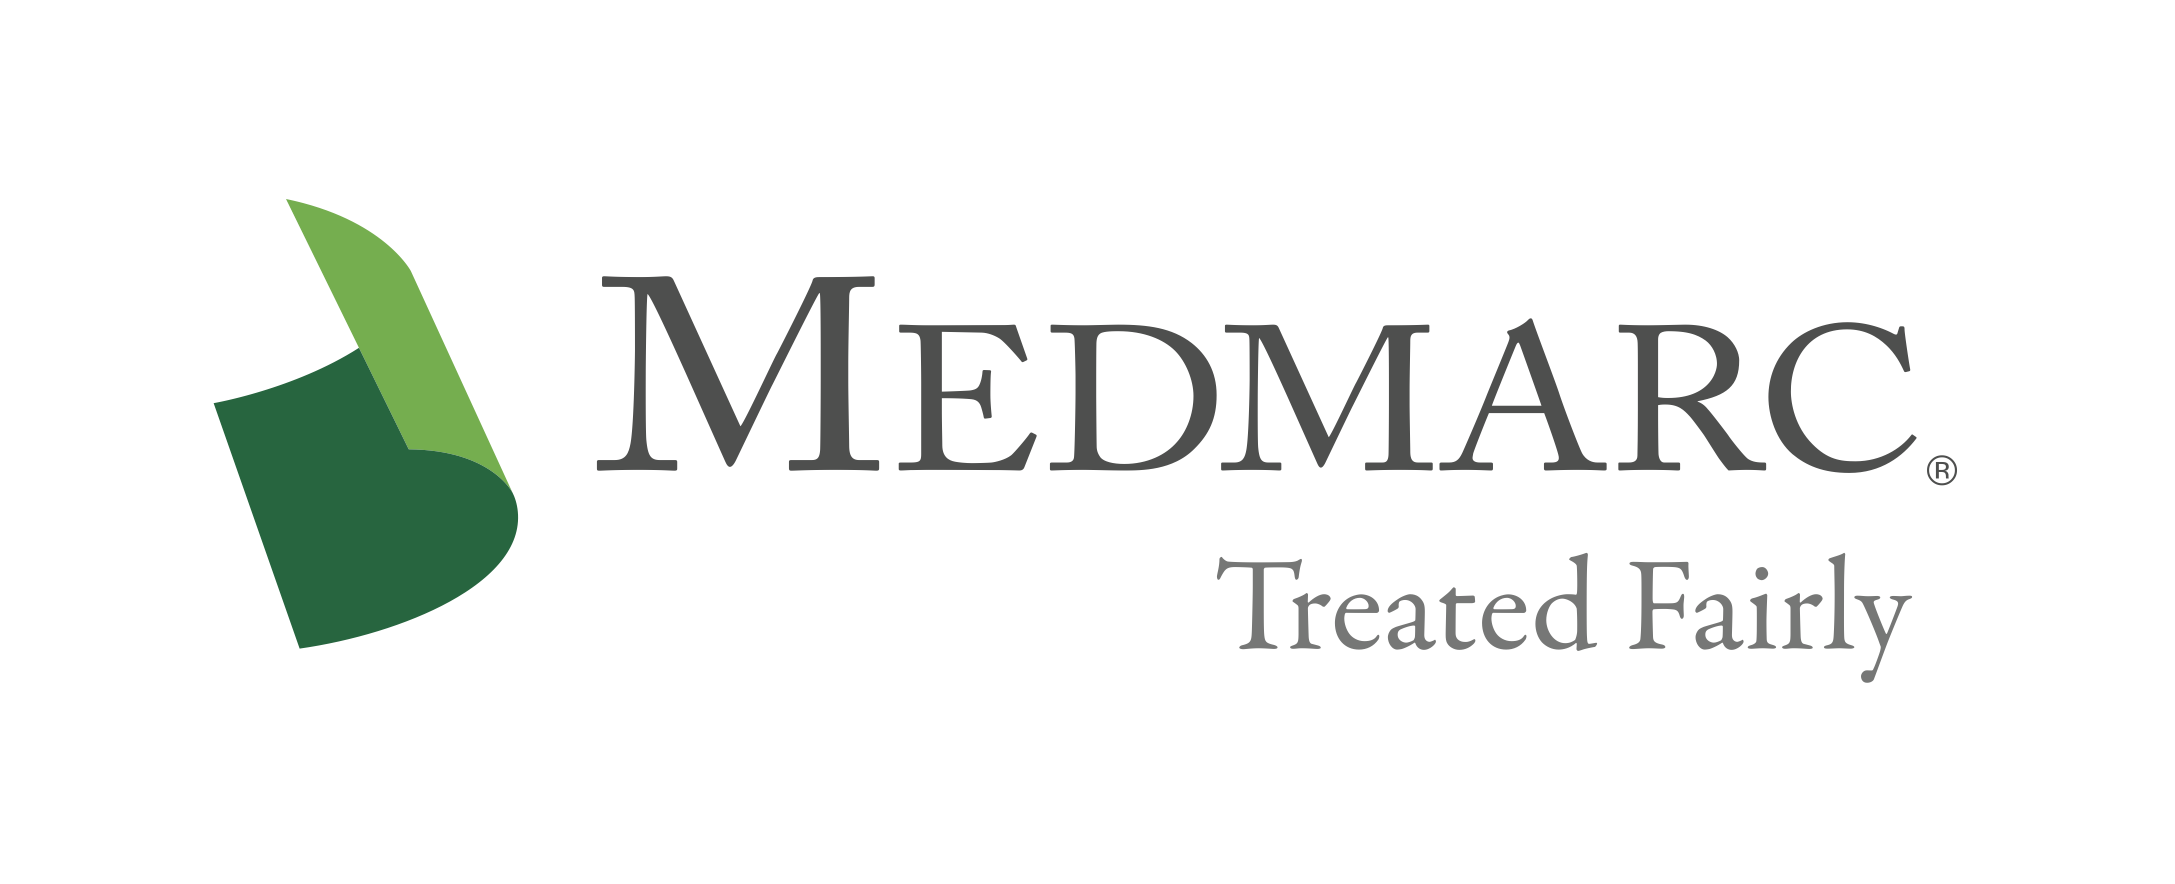 Medmarc - Treated Fairly